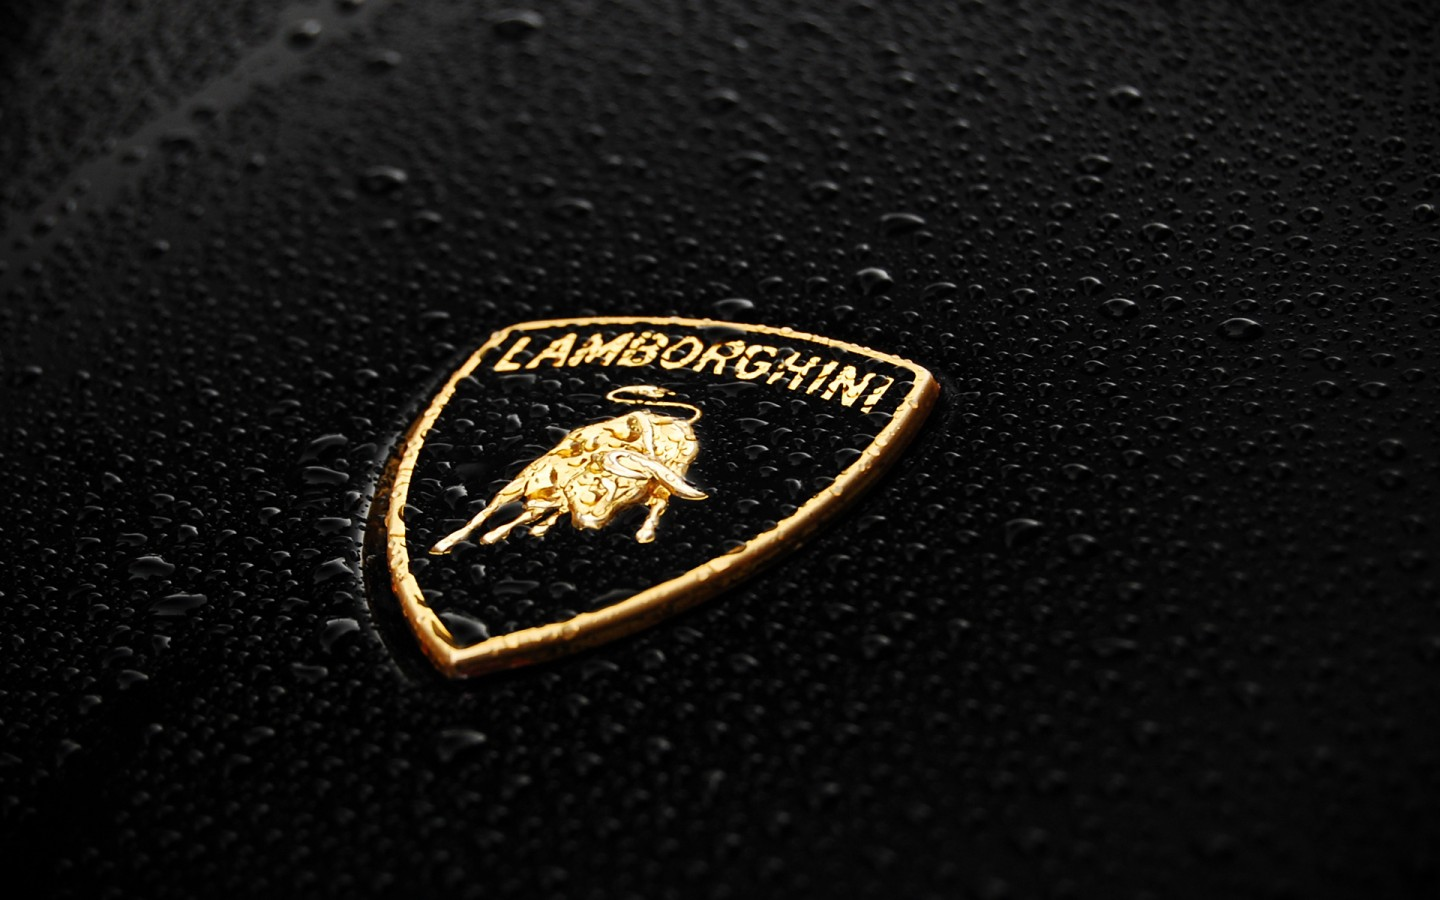 Hd Wallpaper Car Widescreen Lamborghini Logo Wallpaper Hd Car Wallpapers Id 2985